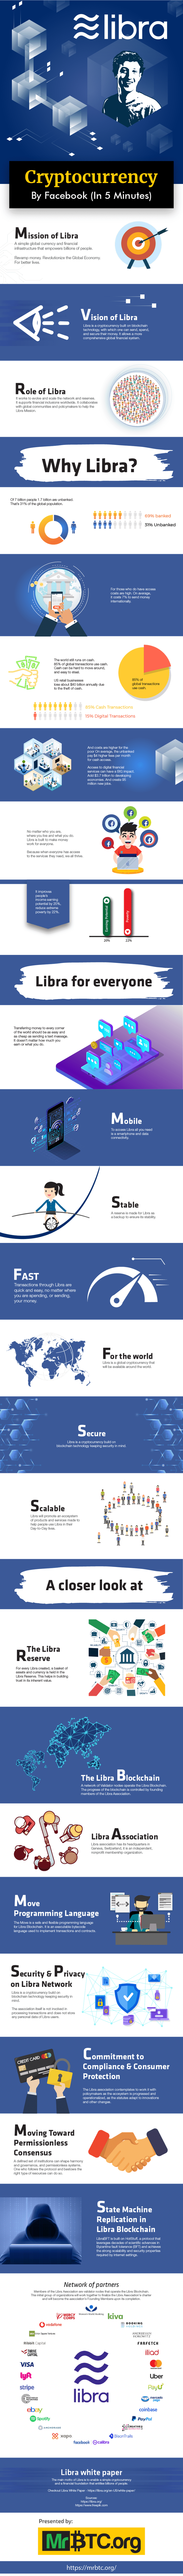 Infographic: What Is Libra? All You Need to Know About Facebook's New Cryptocurrency. What Is The Libra Association? Do People Trust New Facebook's Cryptocurrency? Are You Willing to Invest in Libra the Cryptocurrency by Facebook?